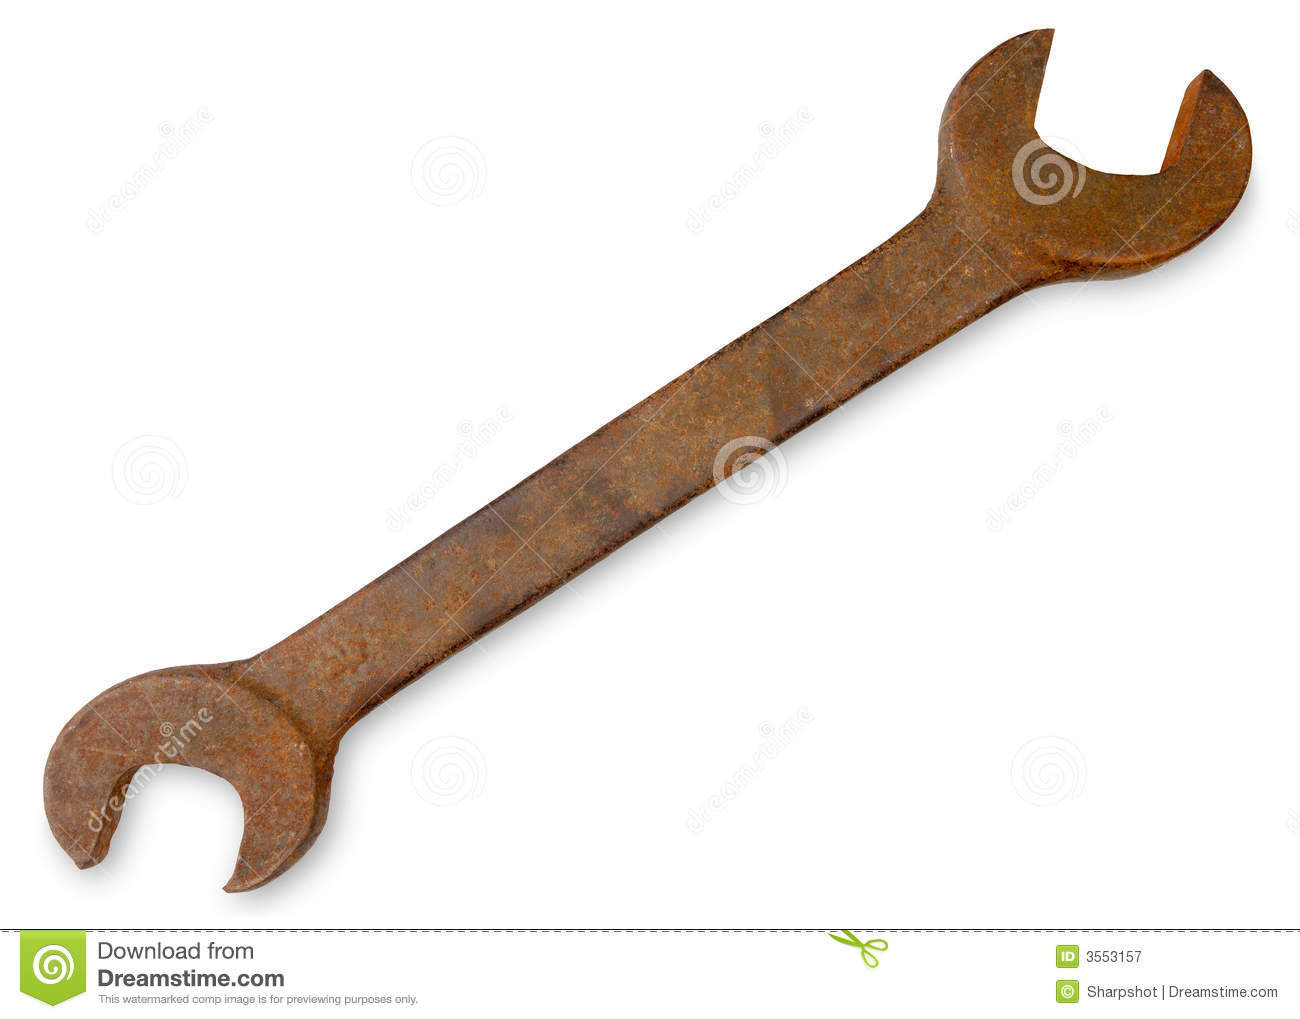 Large rusty spanner.